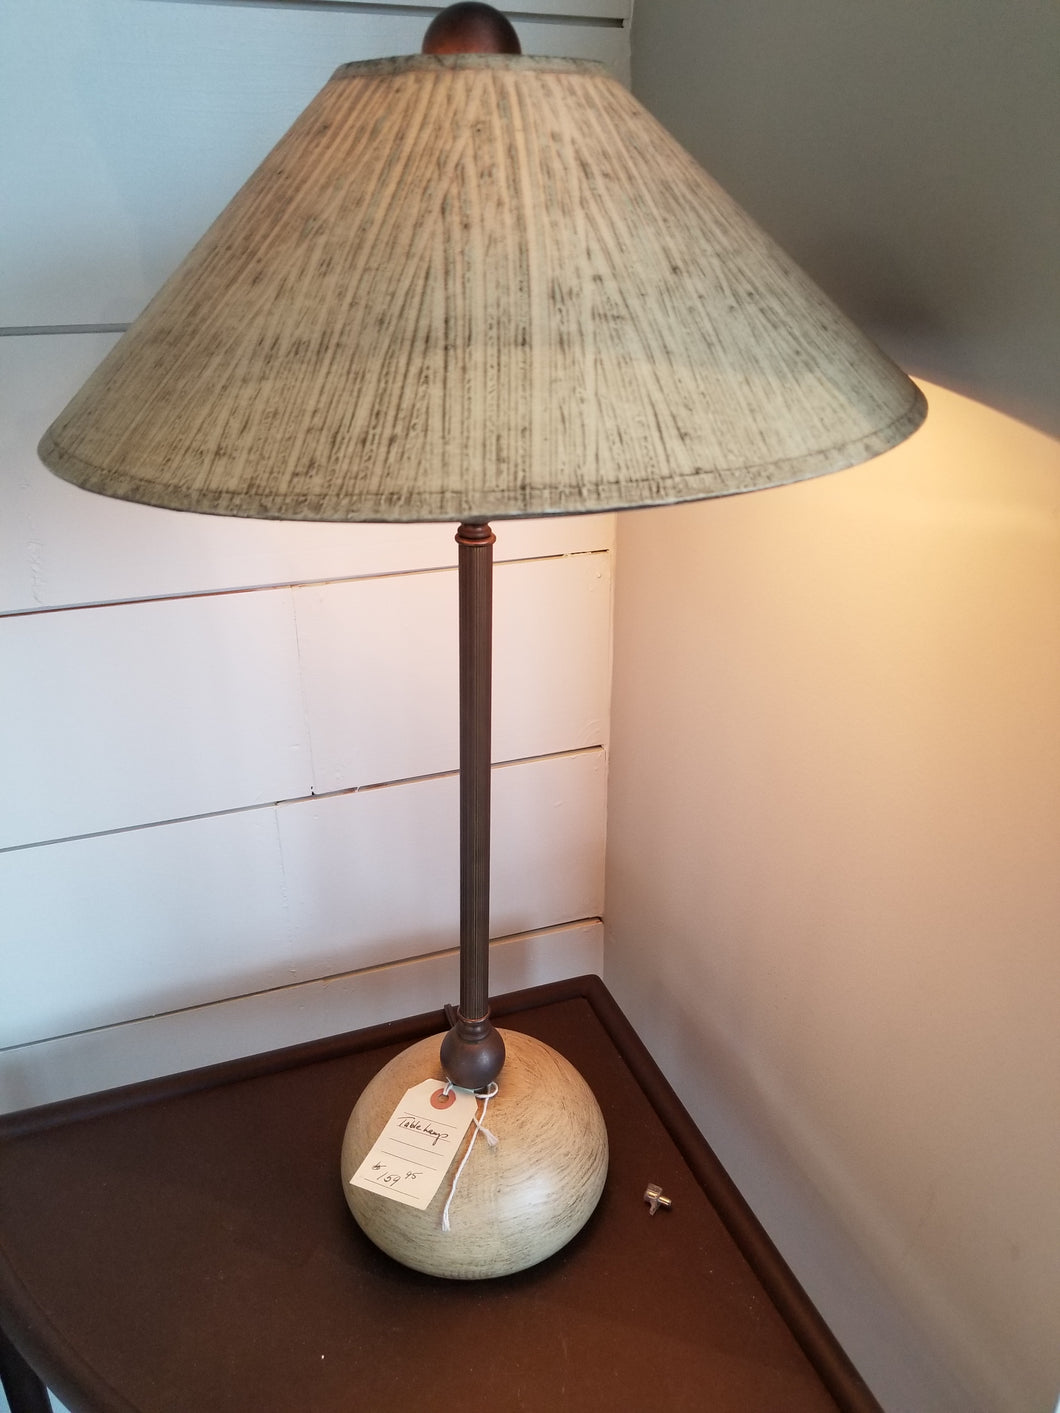 Sand colored table lamp - Ensley Fairfield Mattress Co.